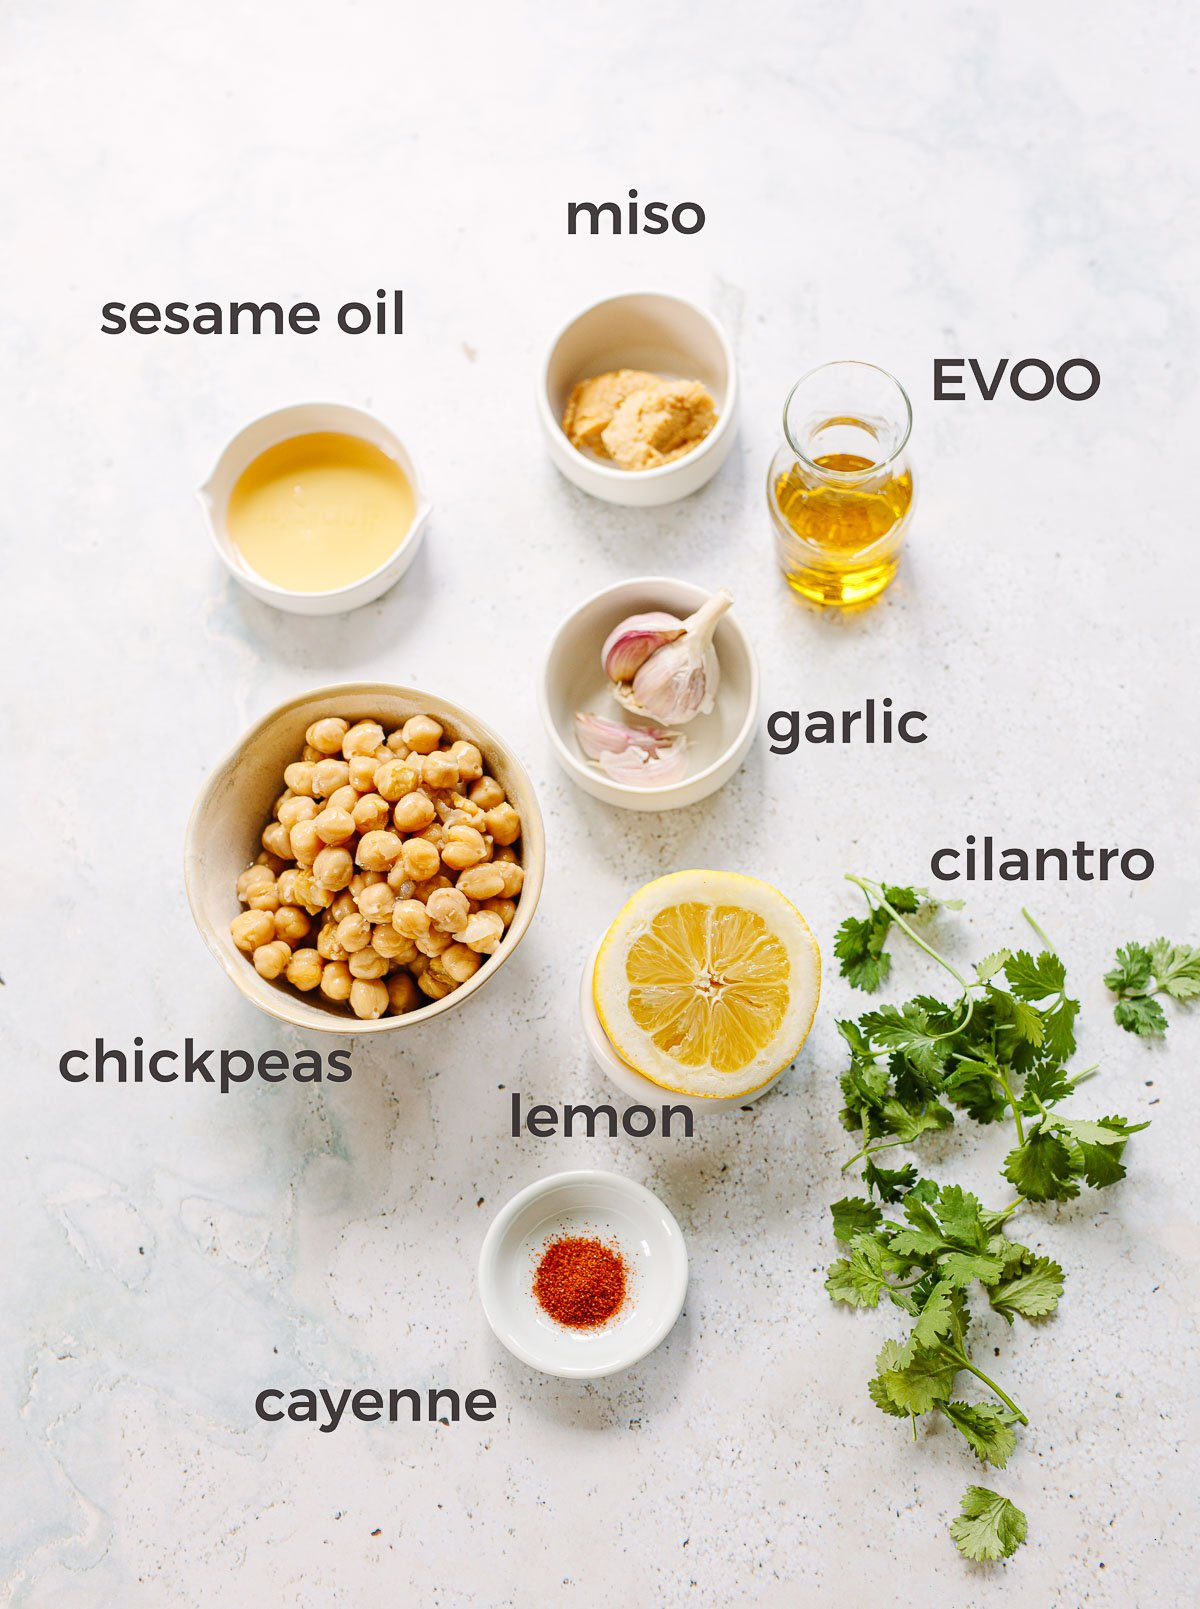 Ingredients to make homemade hummus without tahini